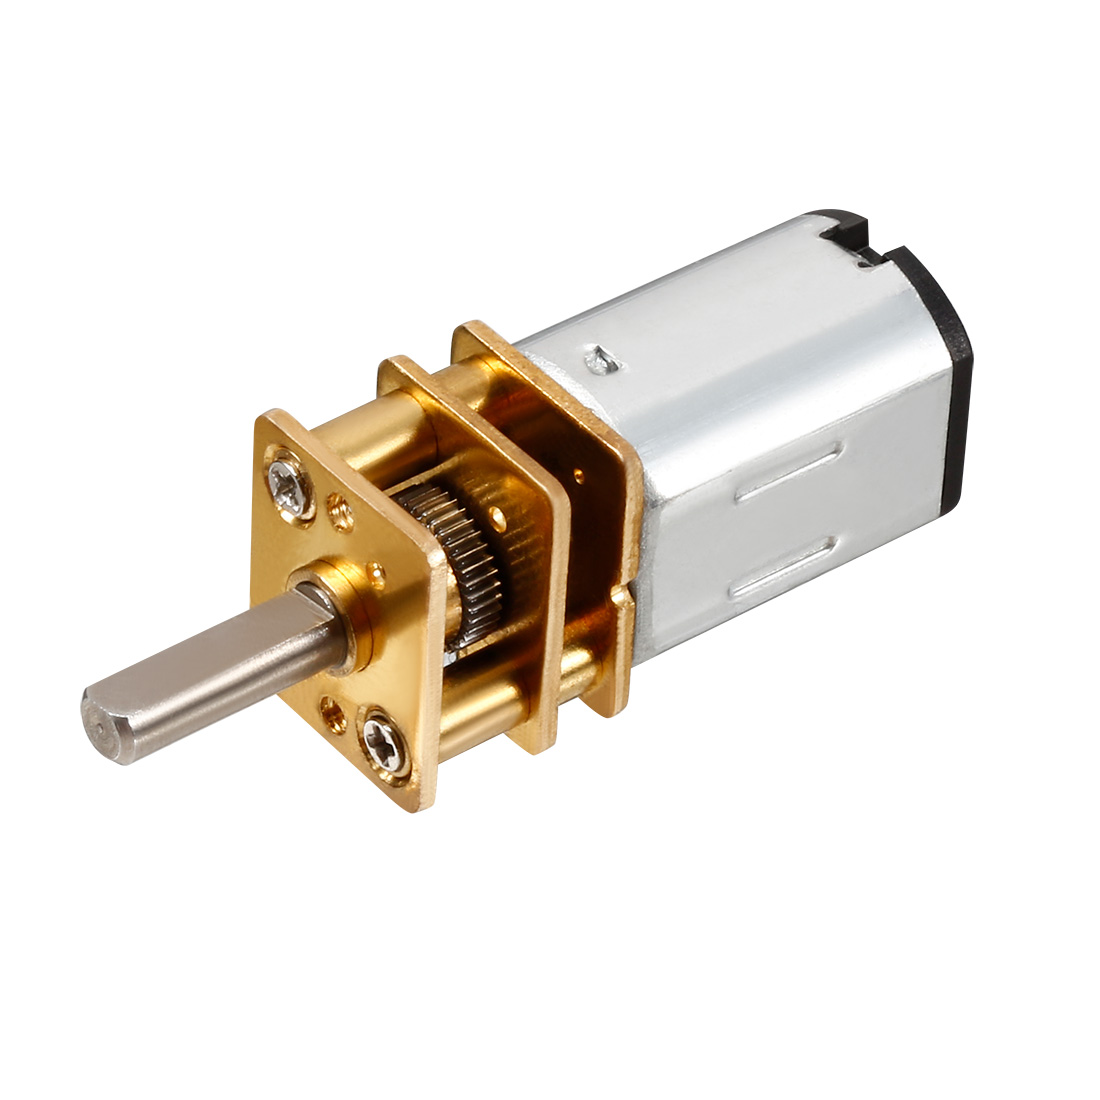 DC 3V 200RPM 12mm Gearbox 3mm Shaft Electric Geared Box Speeducer  Motor